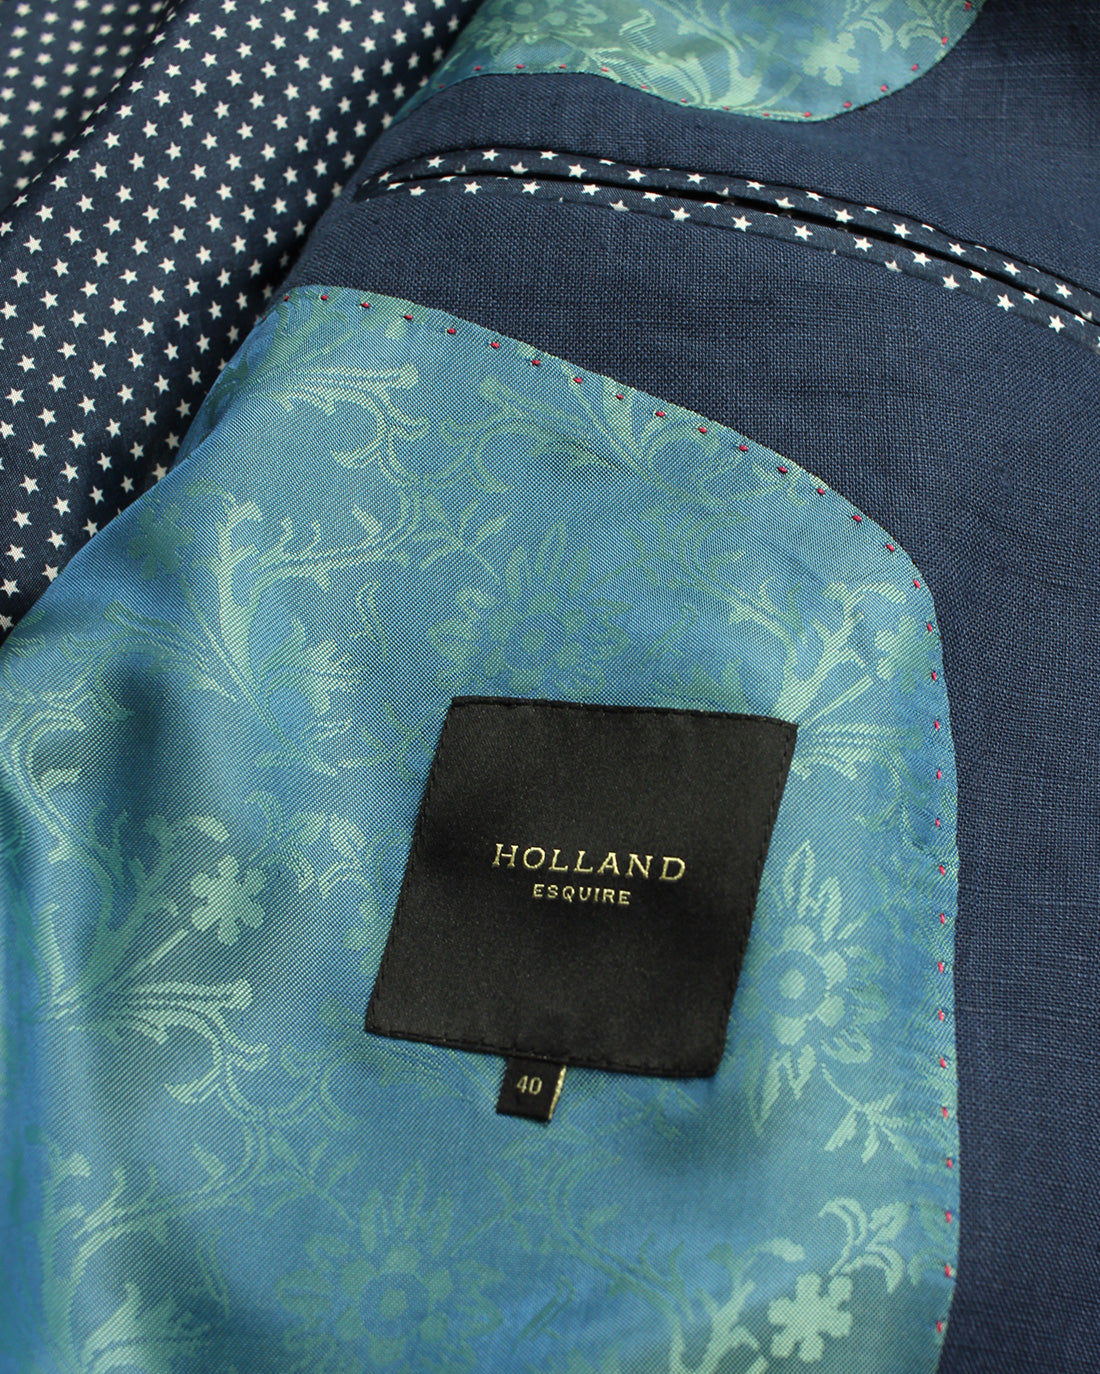 Blue Linen Reginald Jacket - Holland Esquire